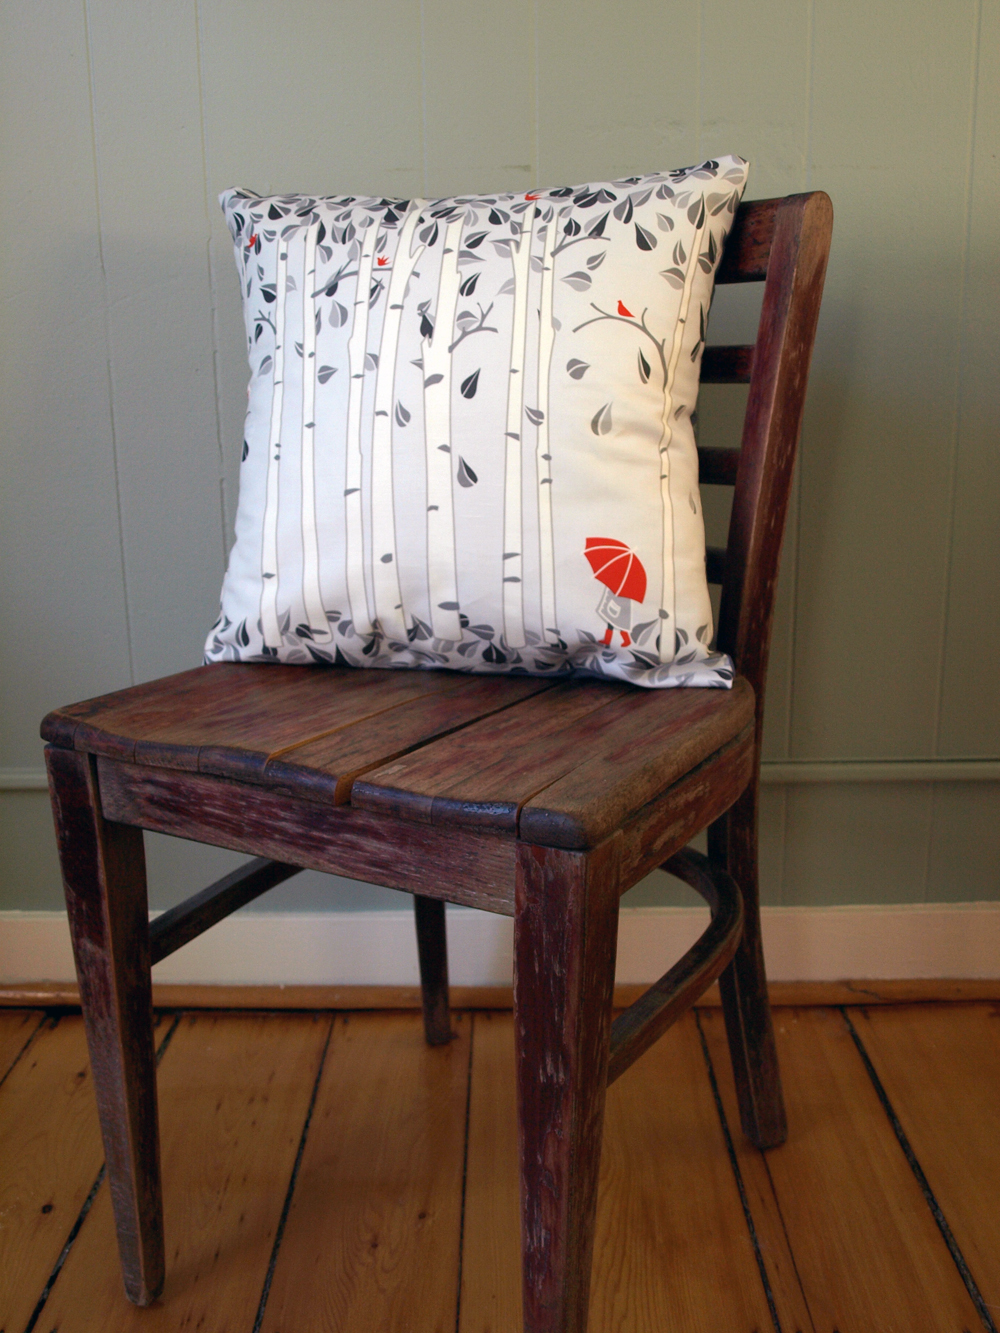 …and Birch Trees Pillow at 18x18 inches. textile design ©lilleputt studio